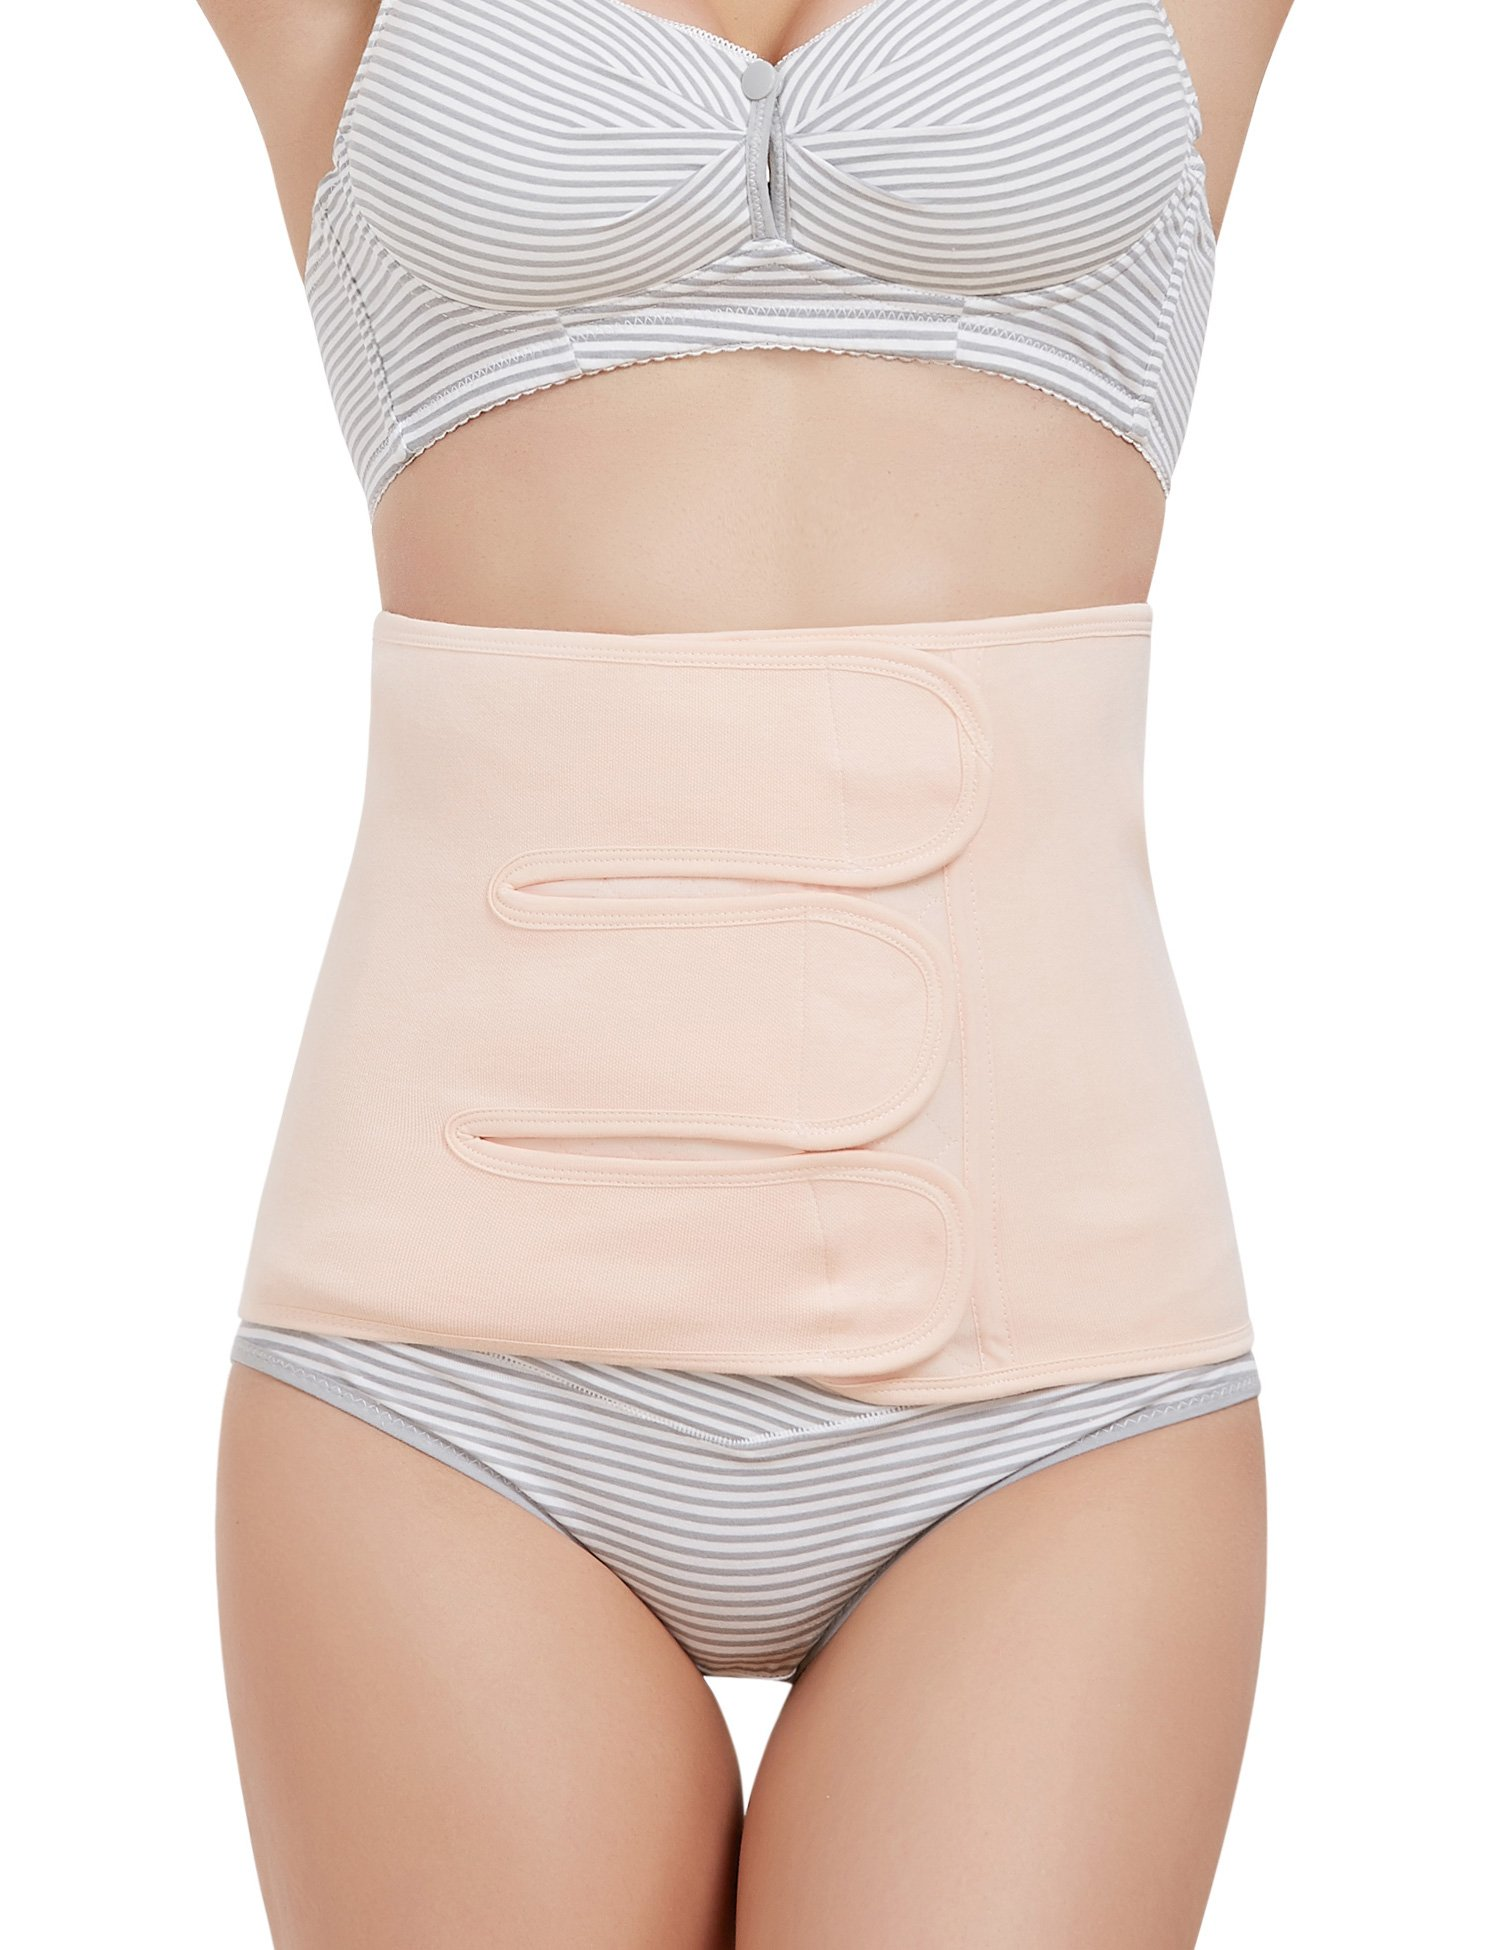 Women Postpartum C-section Recovery Belly Band Wrap Girdle Body Shaper Nude XL